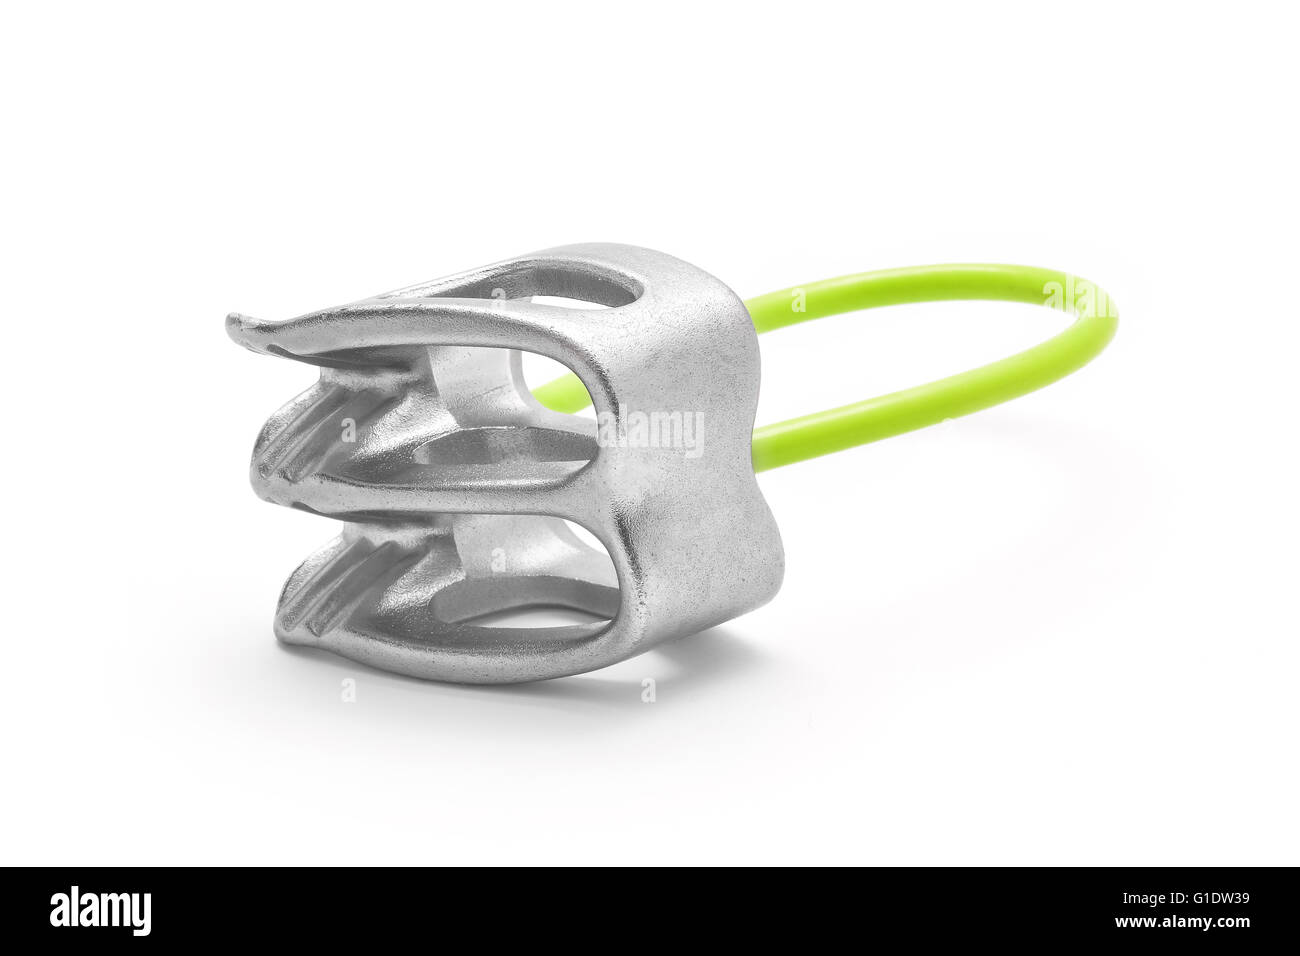 Belay atc rappel device isolated - Stock Image